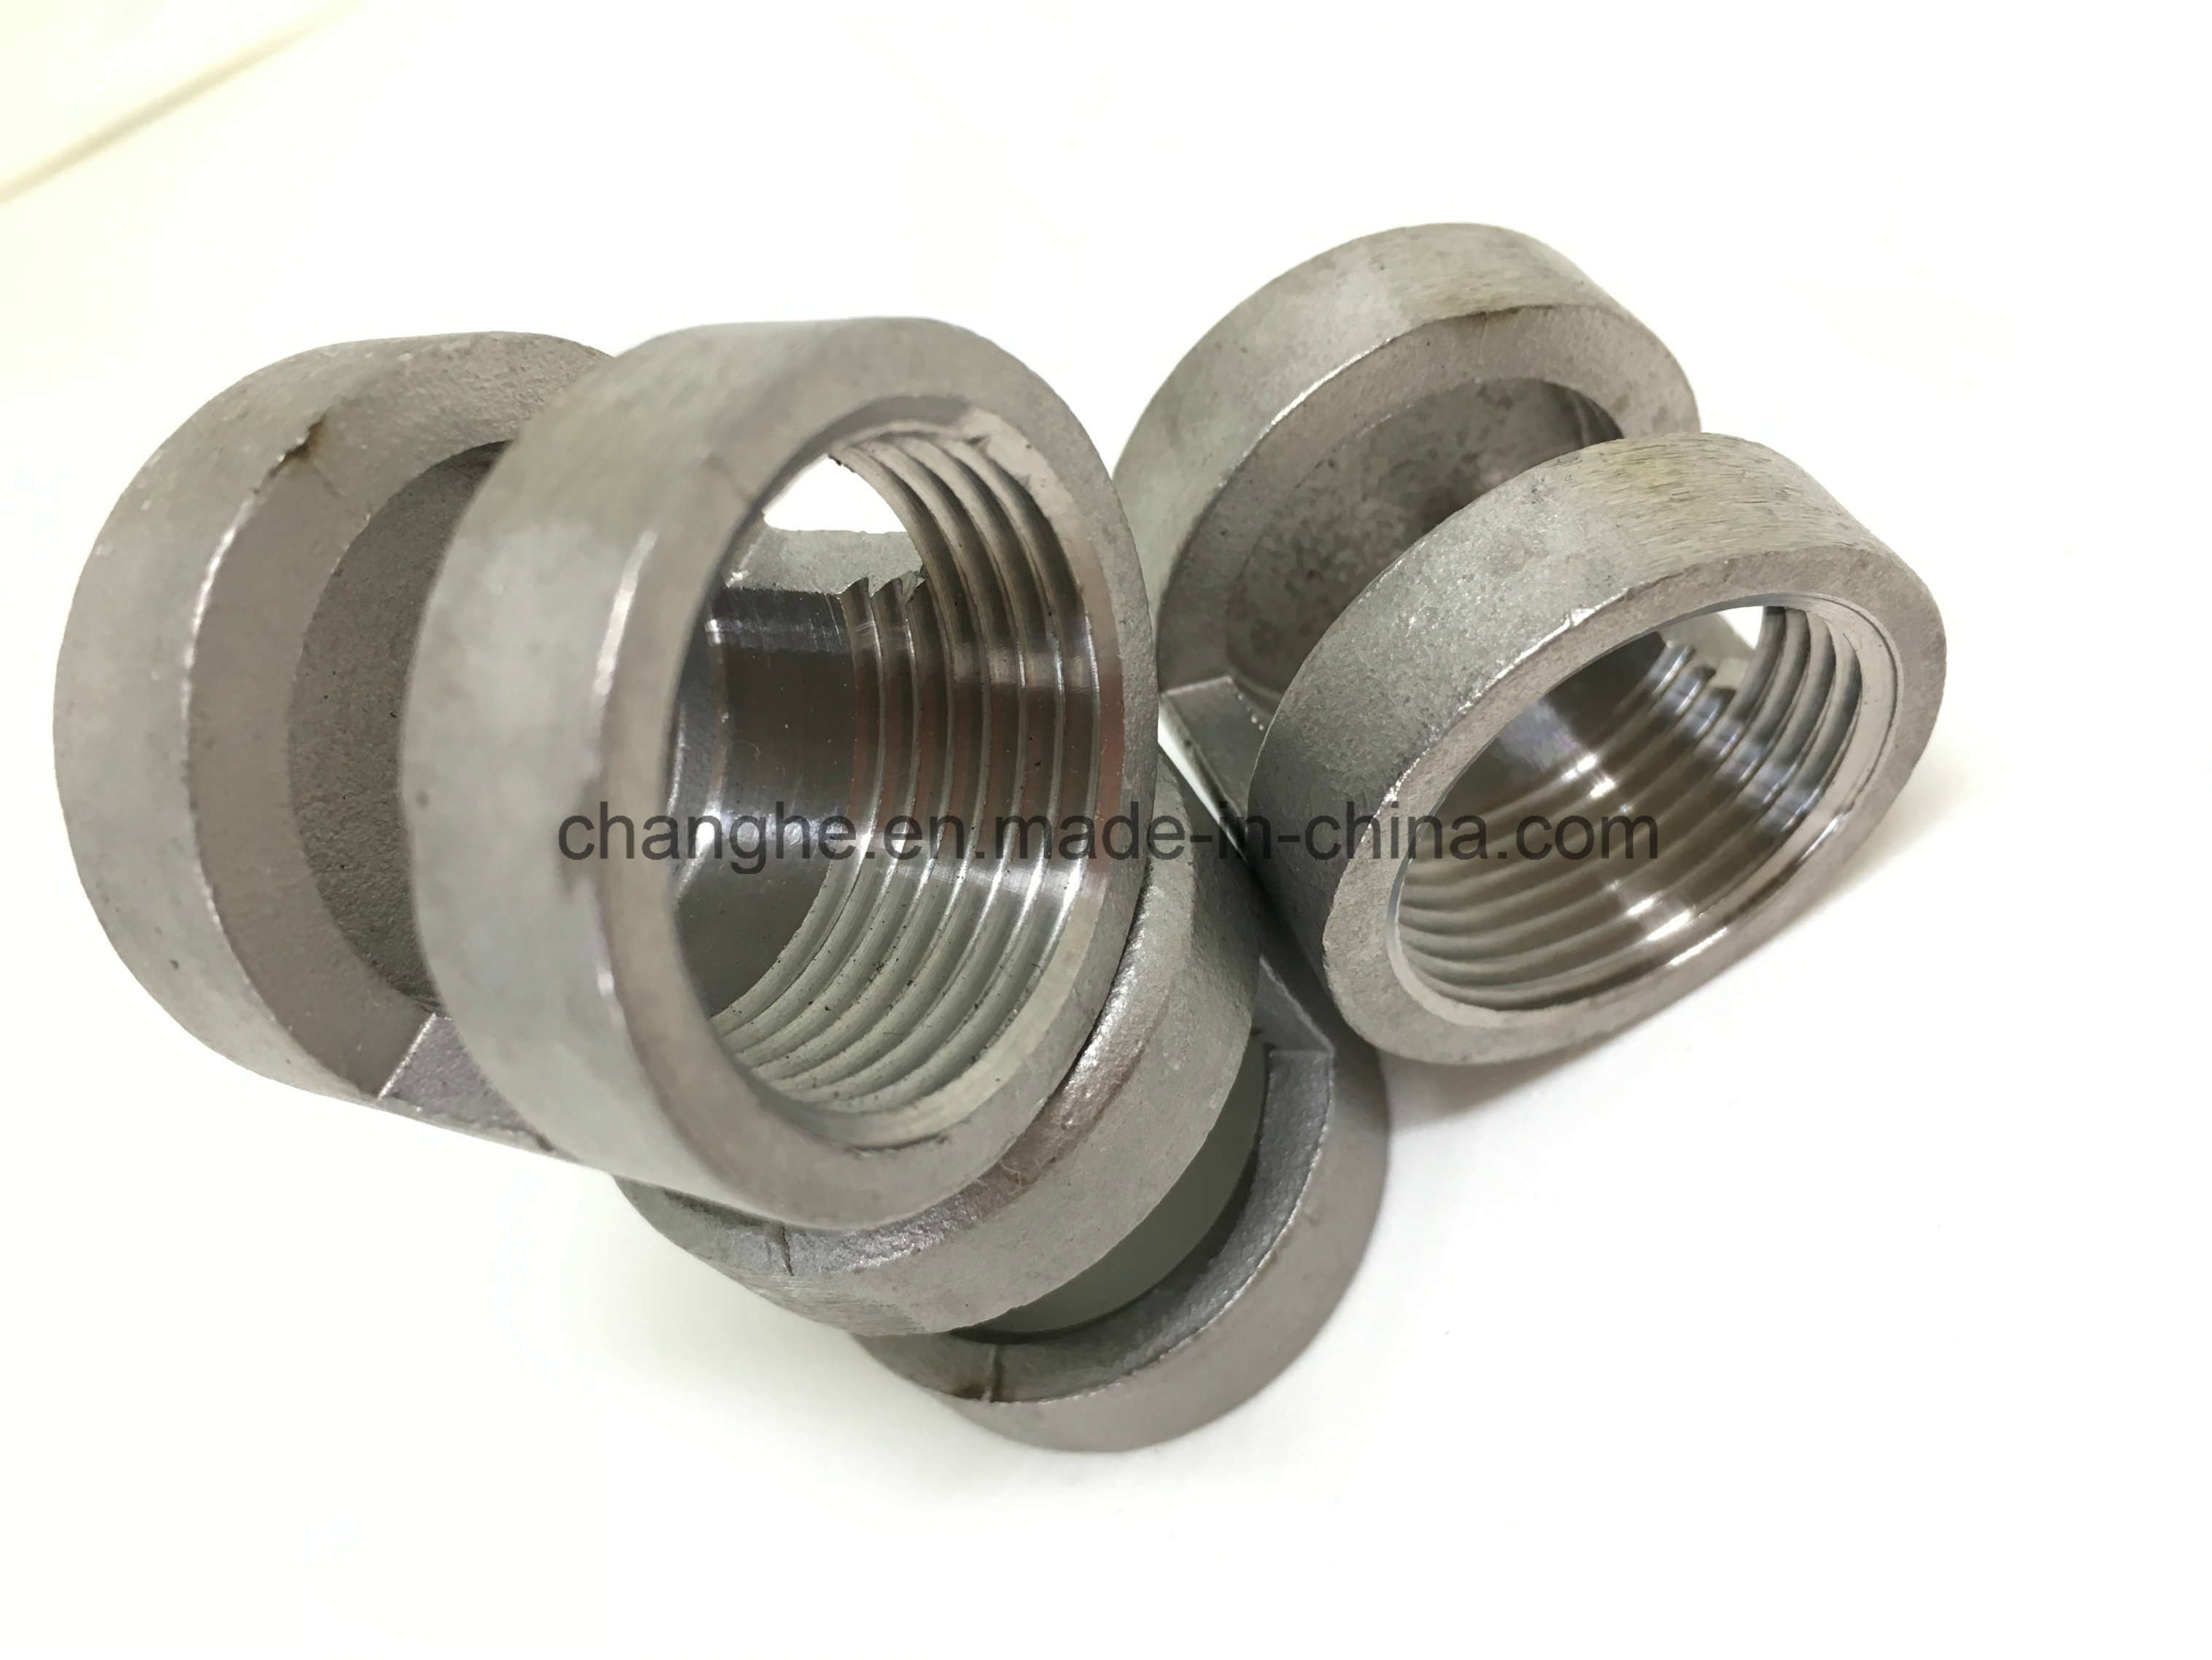 Steel Casting Part with High Quality